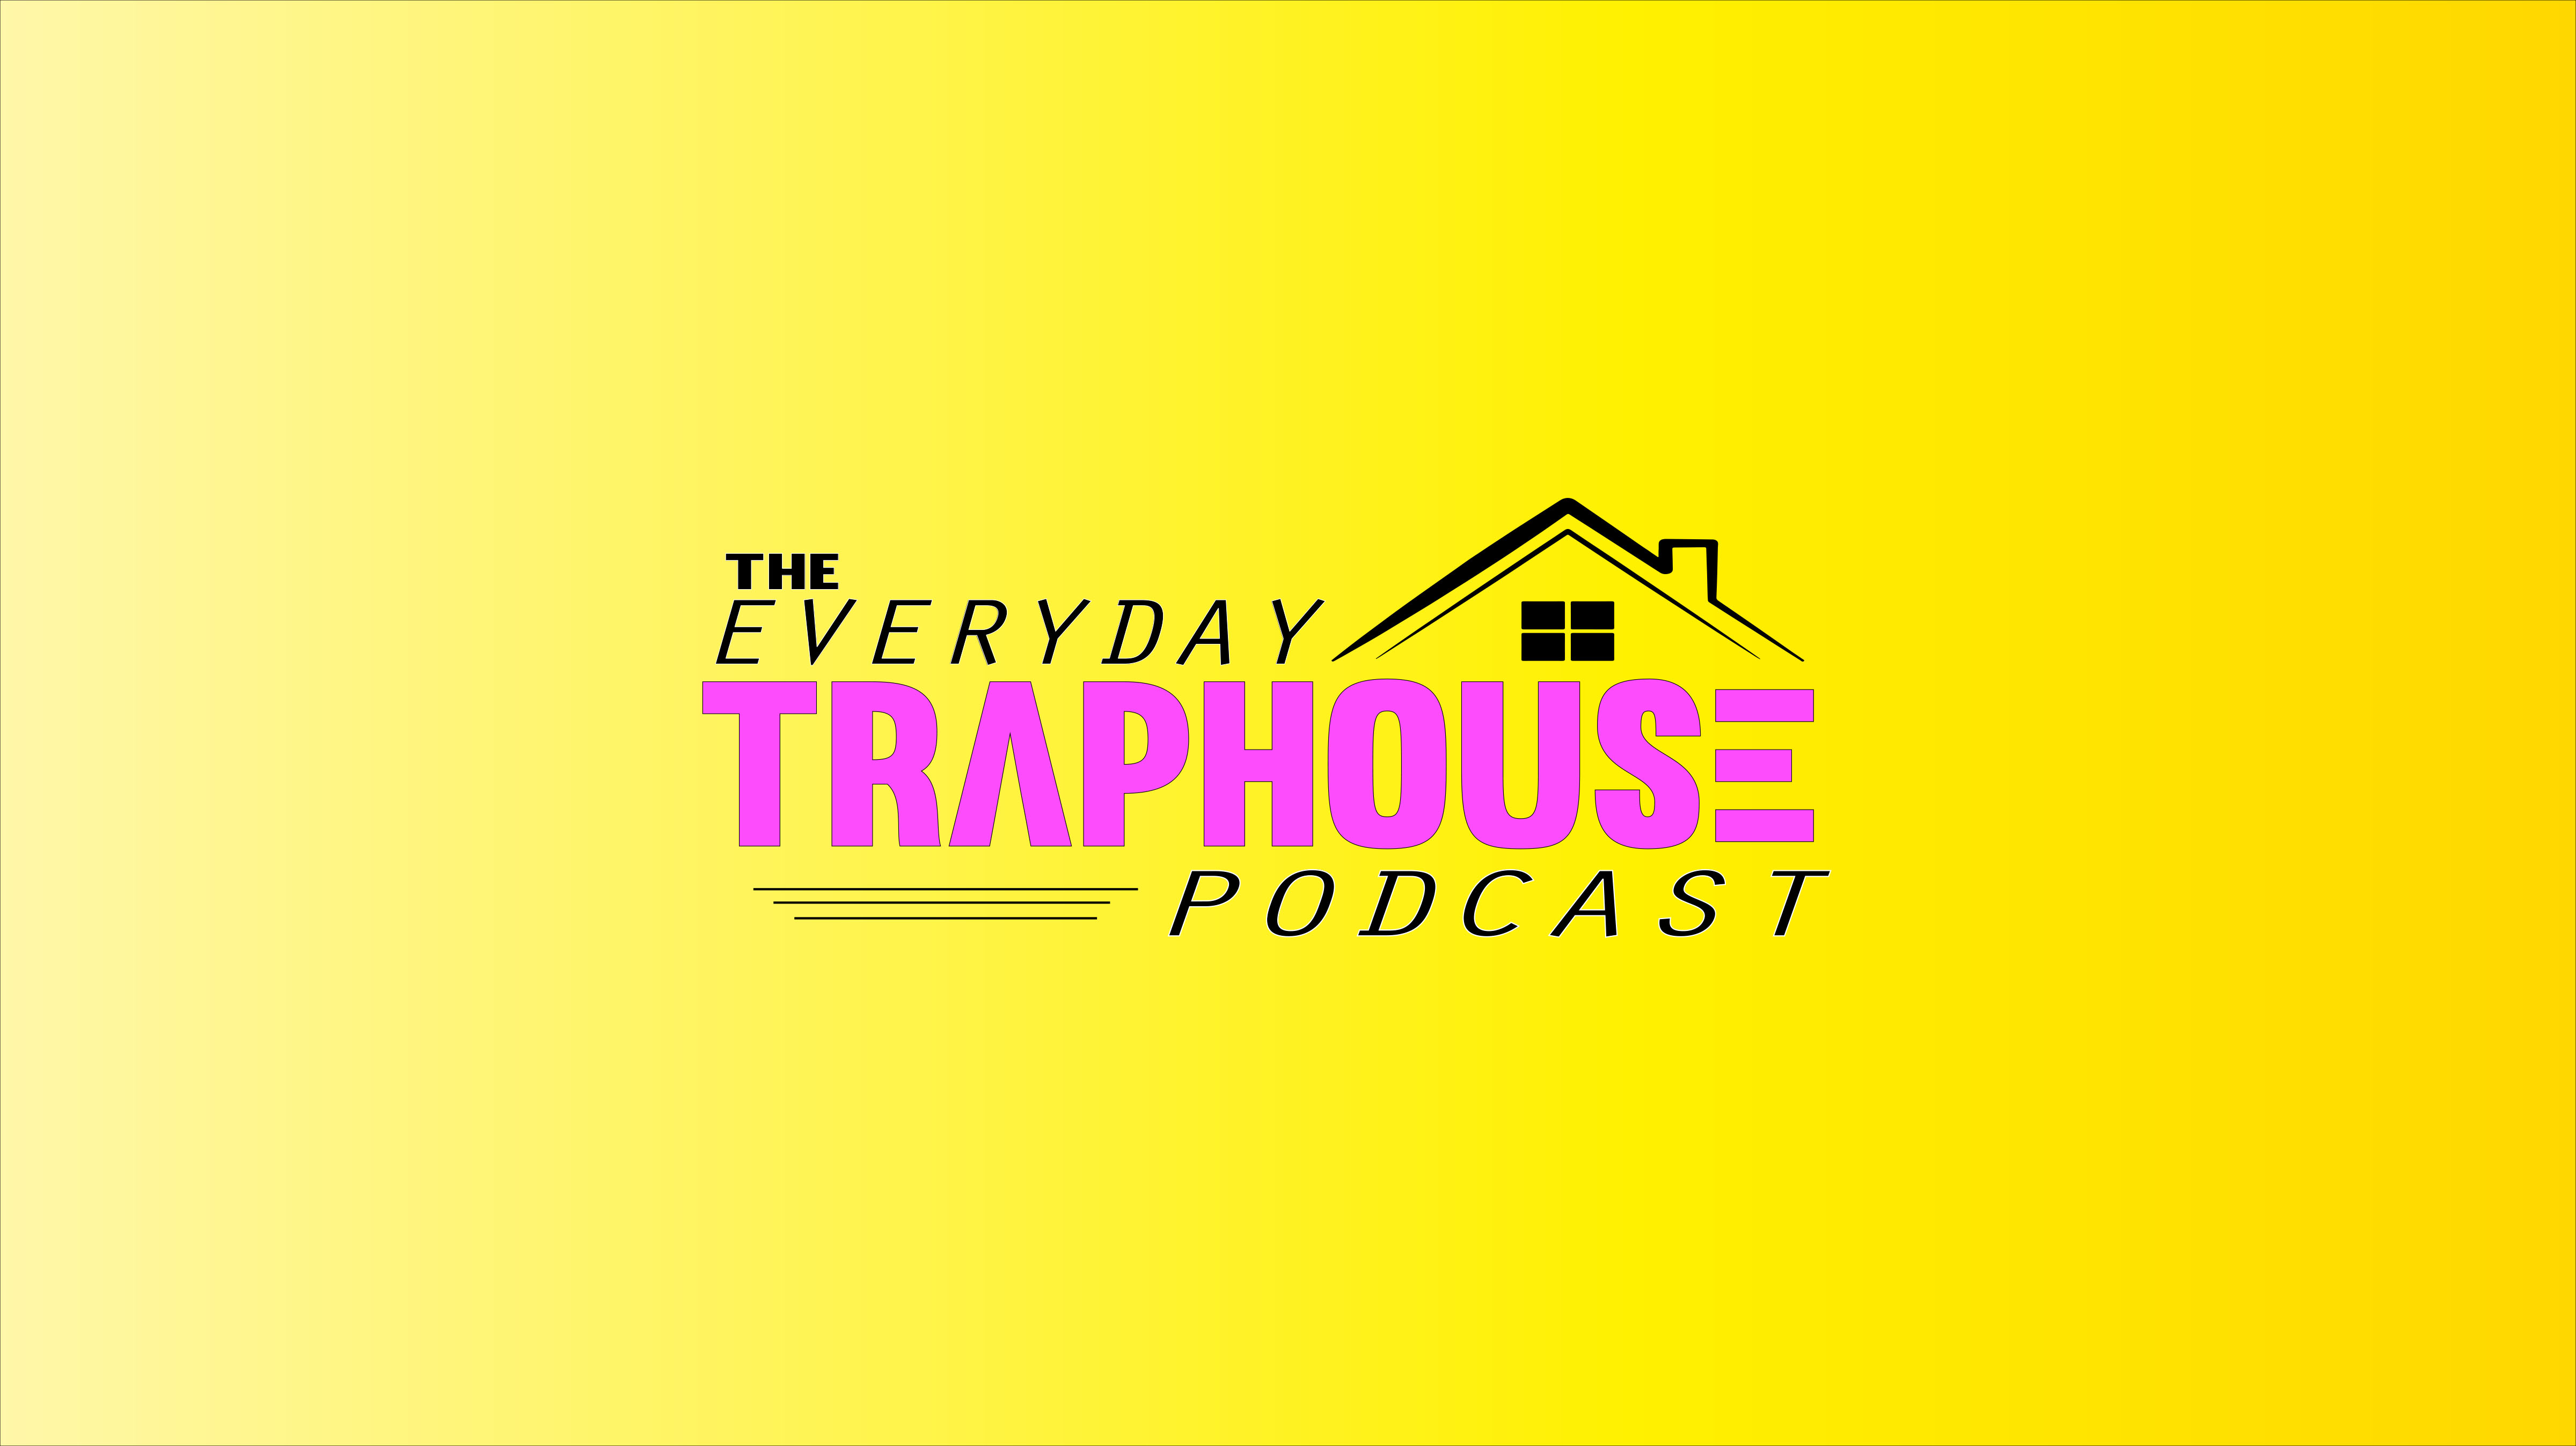 The Everyday Traphouse Podcast